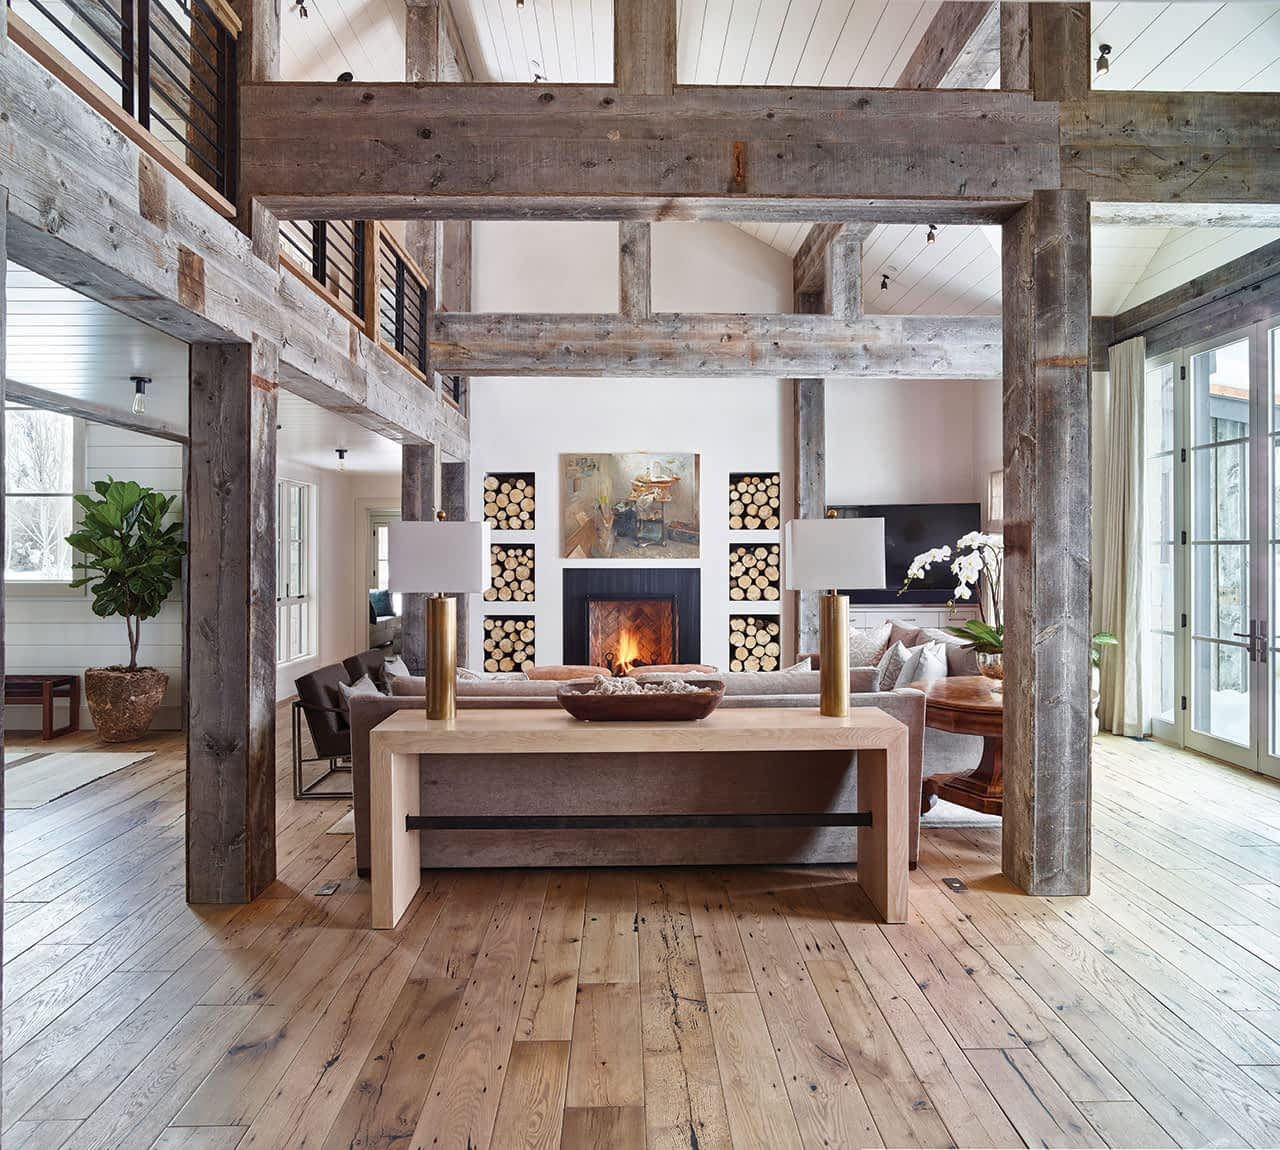 Reclaimed wood flooring in the living area lends an informal feel to the space. A Zoey Frank painting hangs above the fireplace.